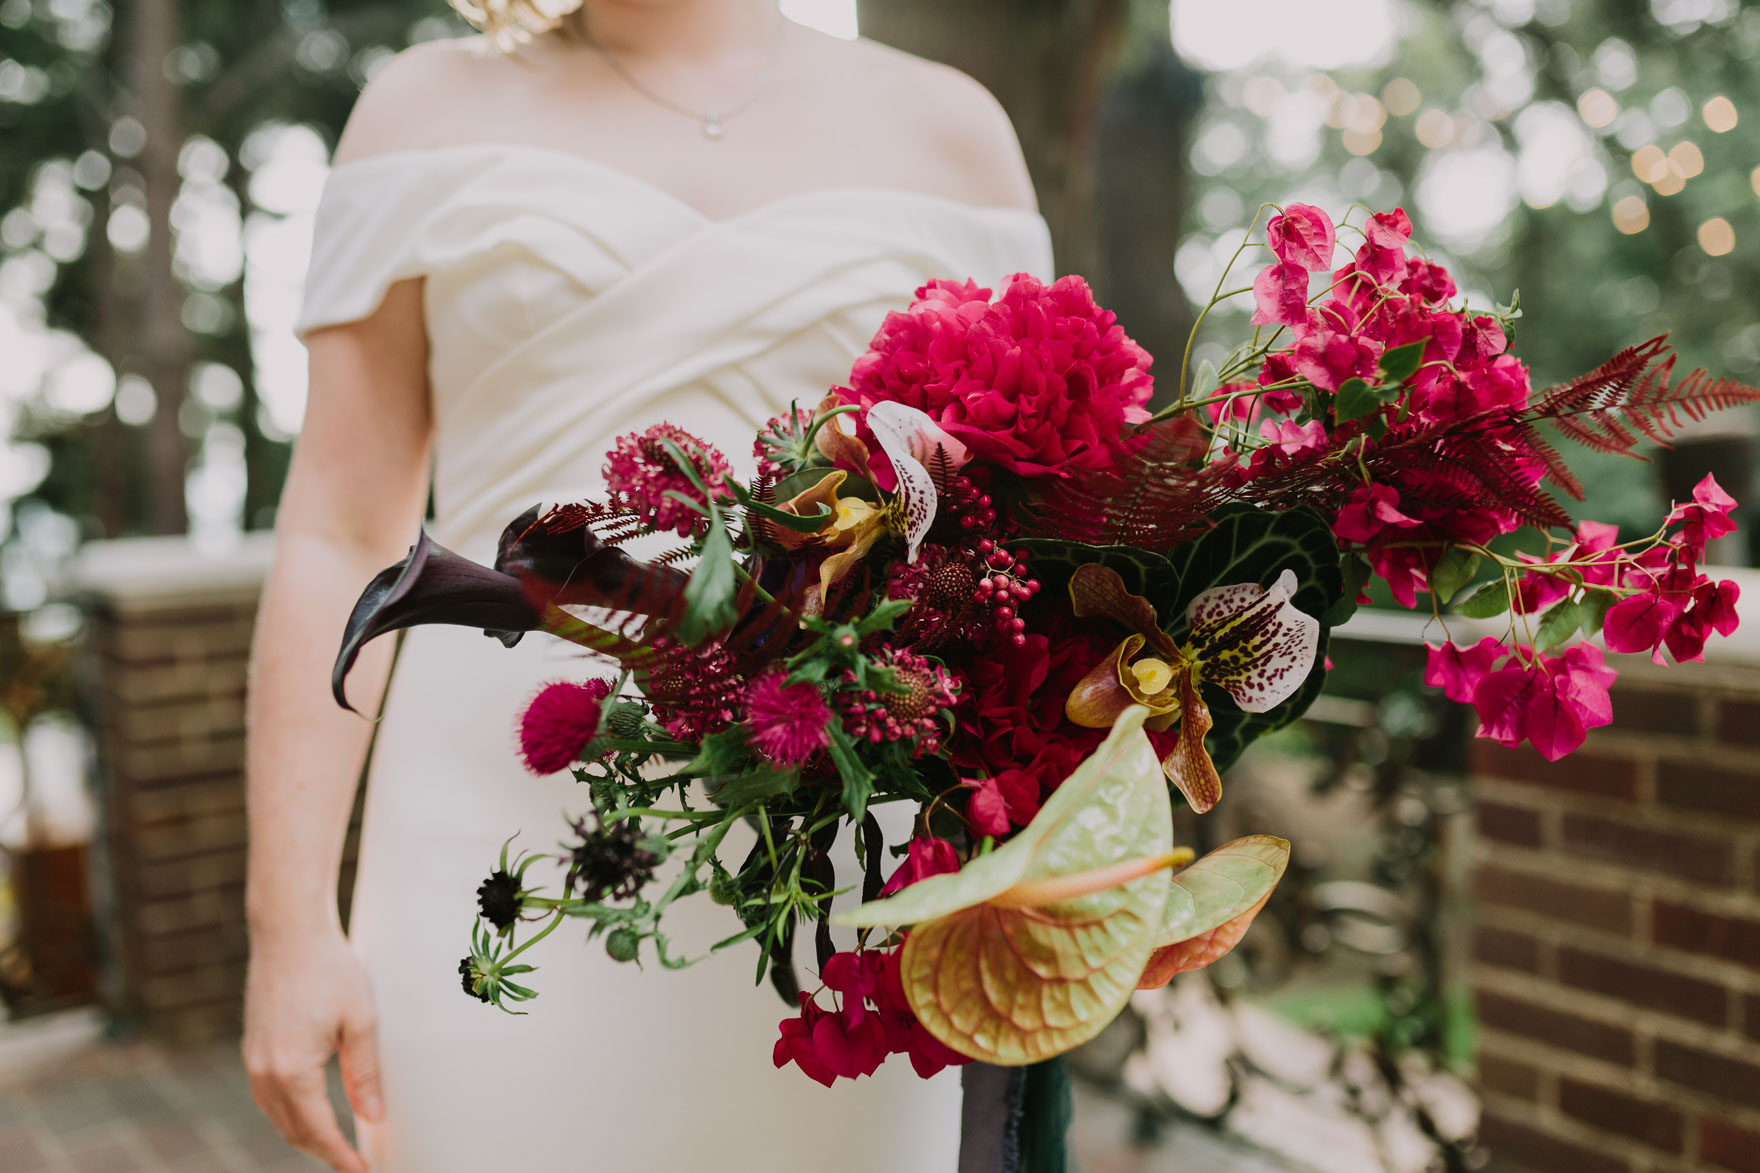 Quirky Celebration of Love & Plants – Photo by Let's Frolic Together